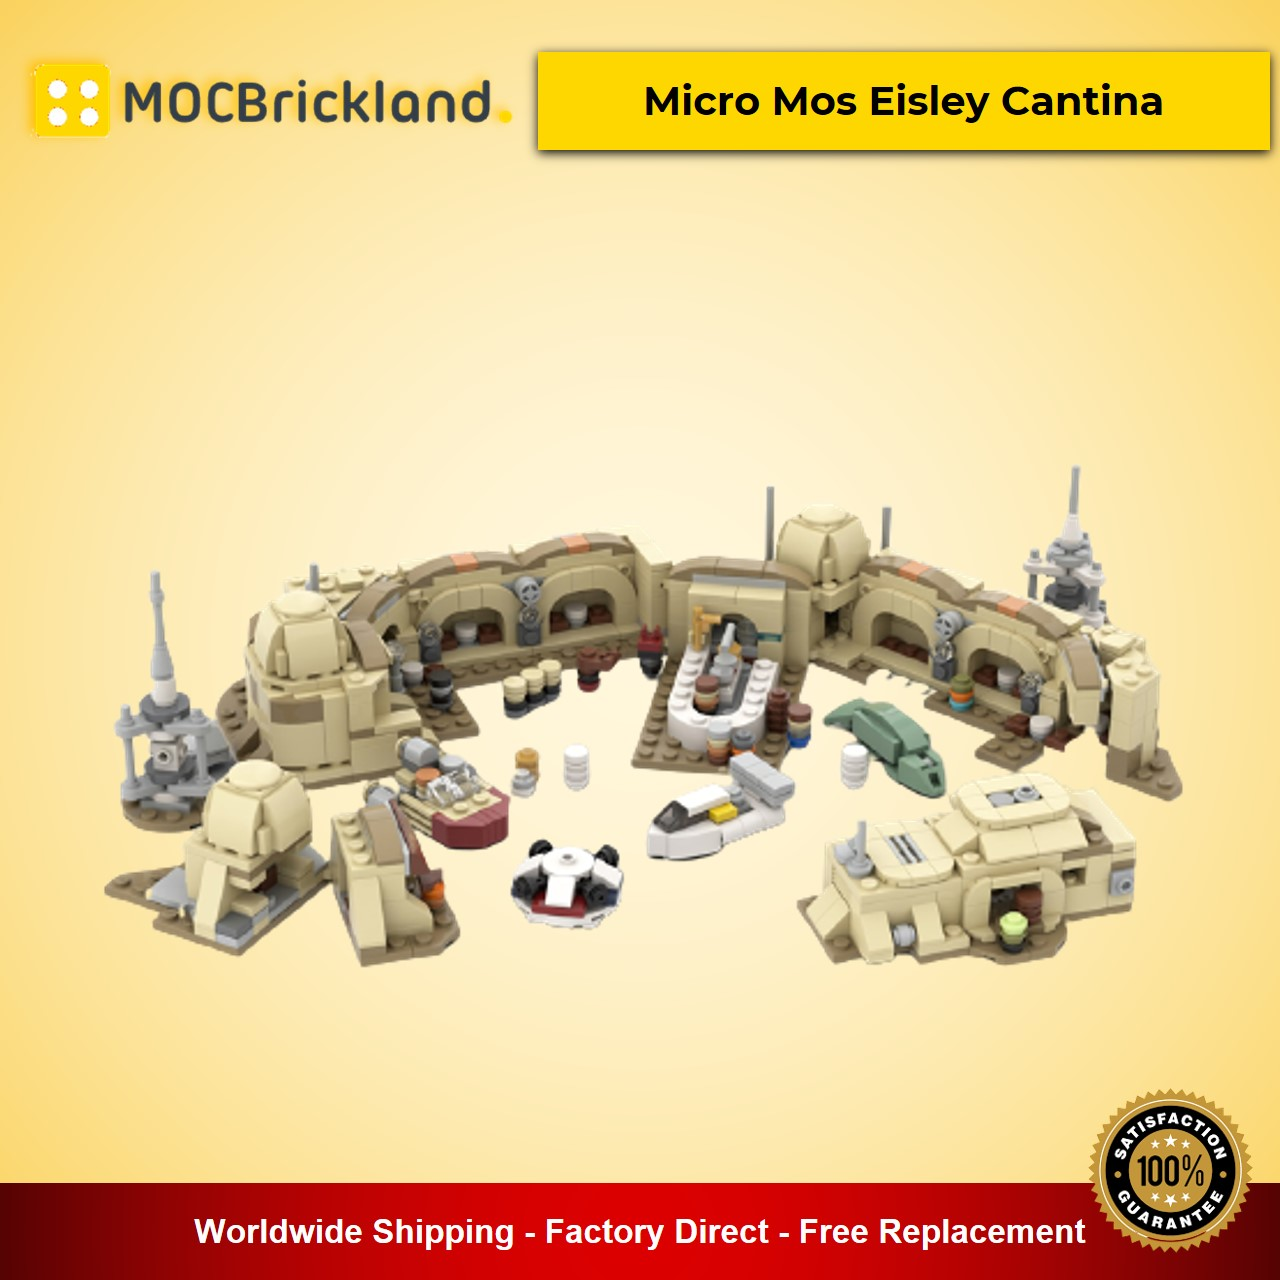 Micro Mos Eisley Cantina MOC-57537 Star Wars Designed By ron_mcphatty With 865 Pieces